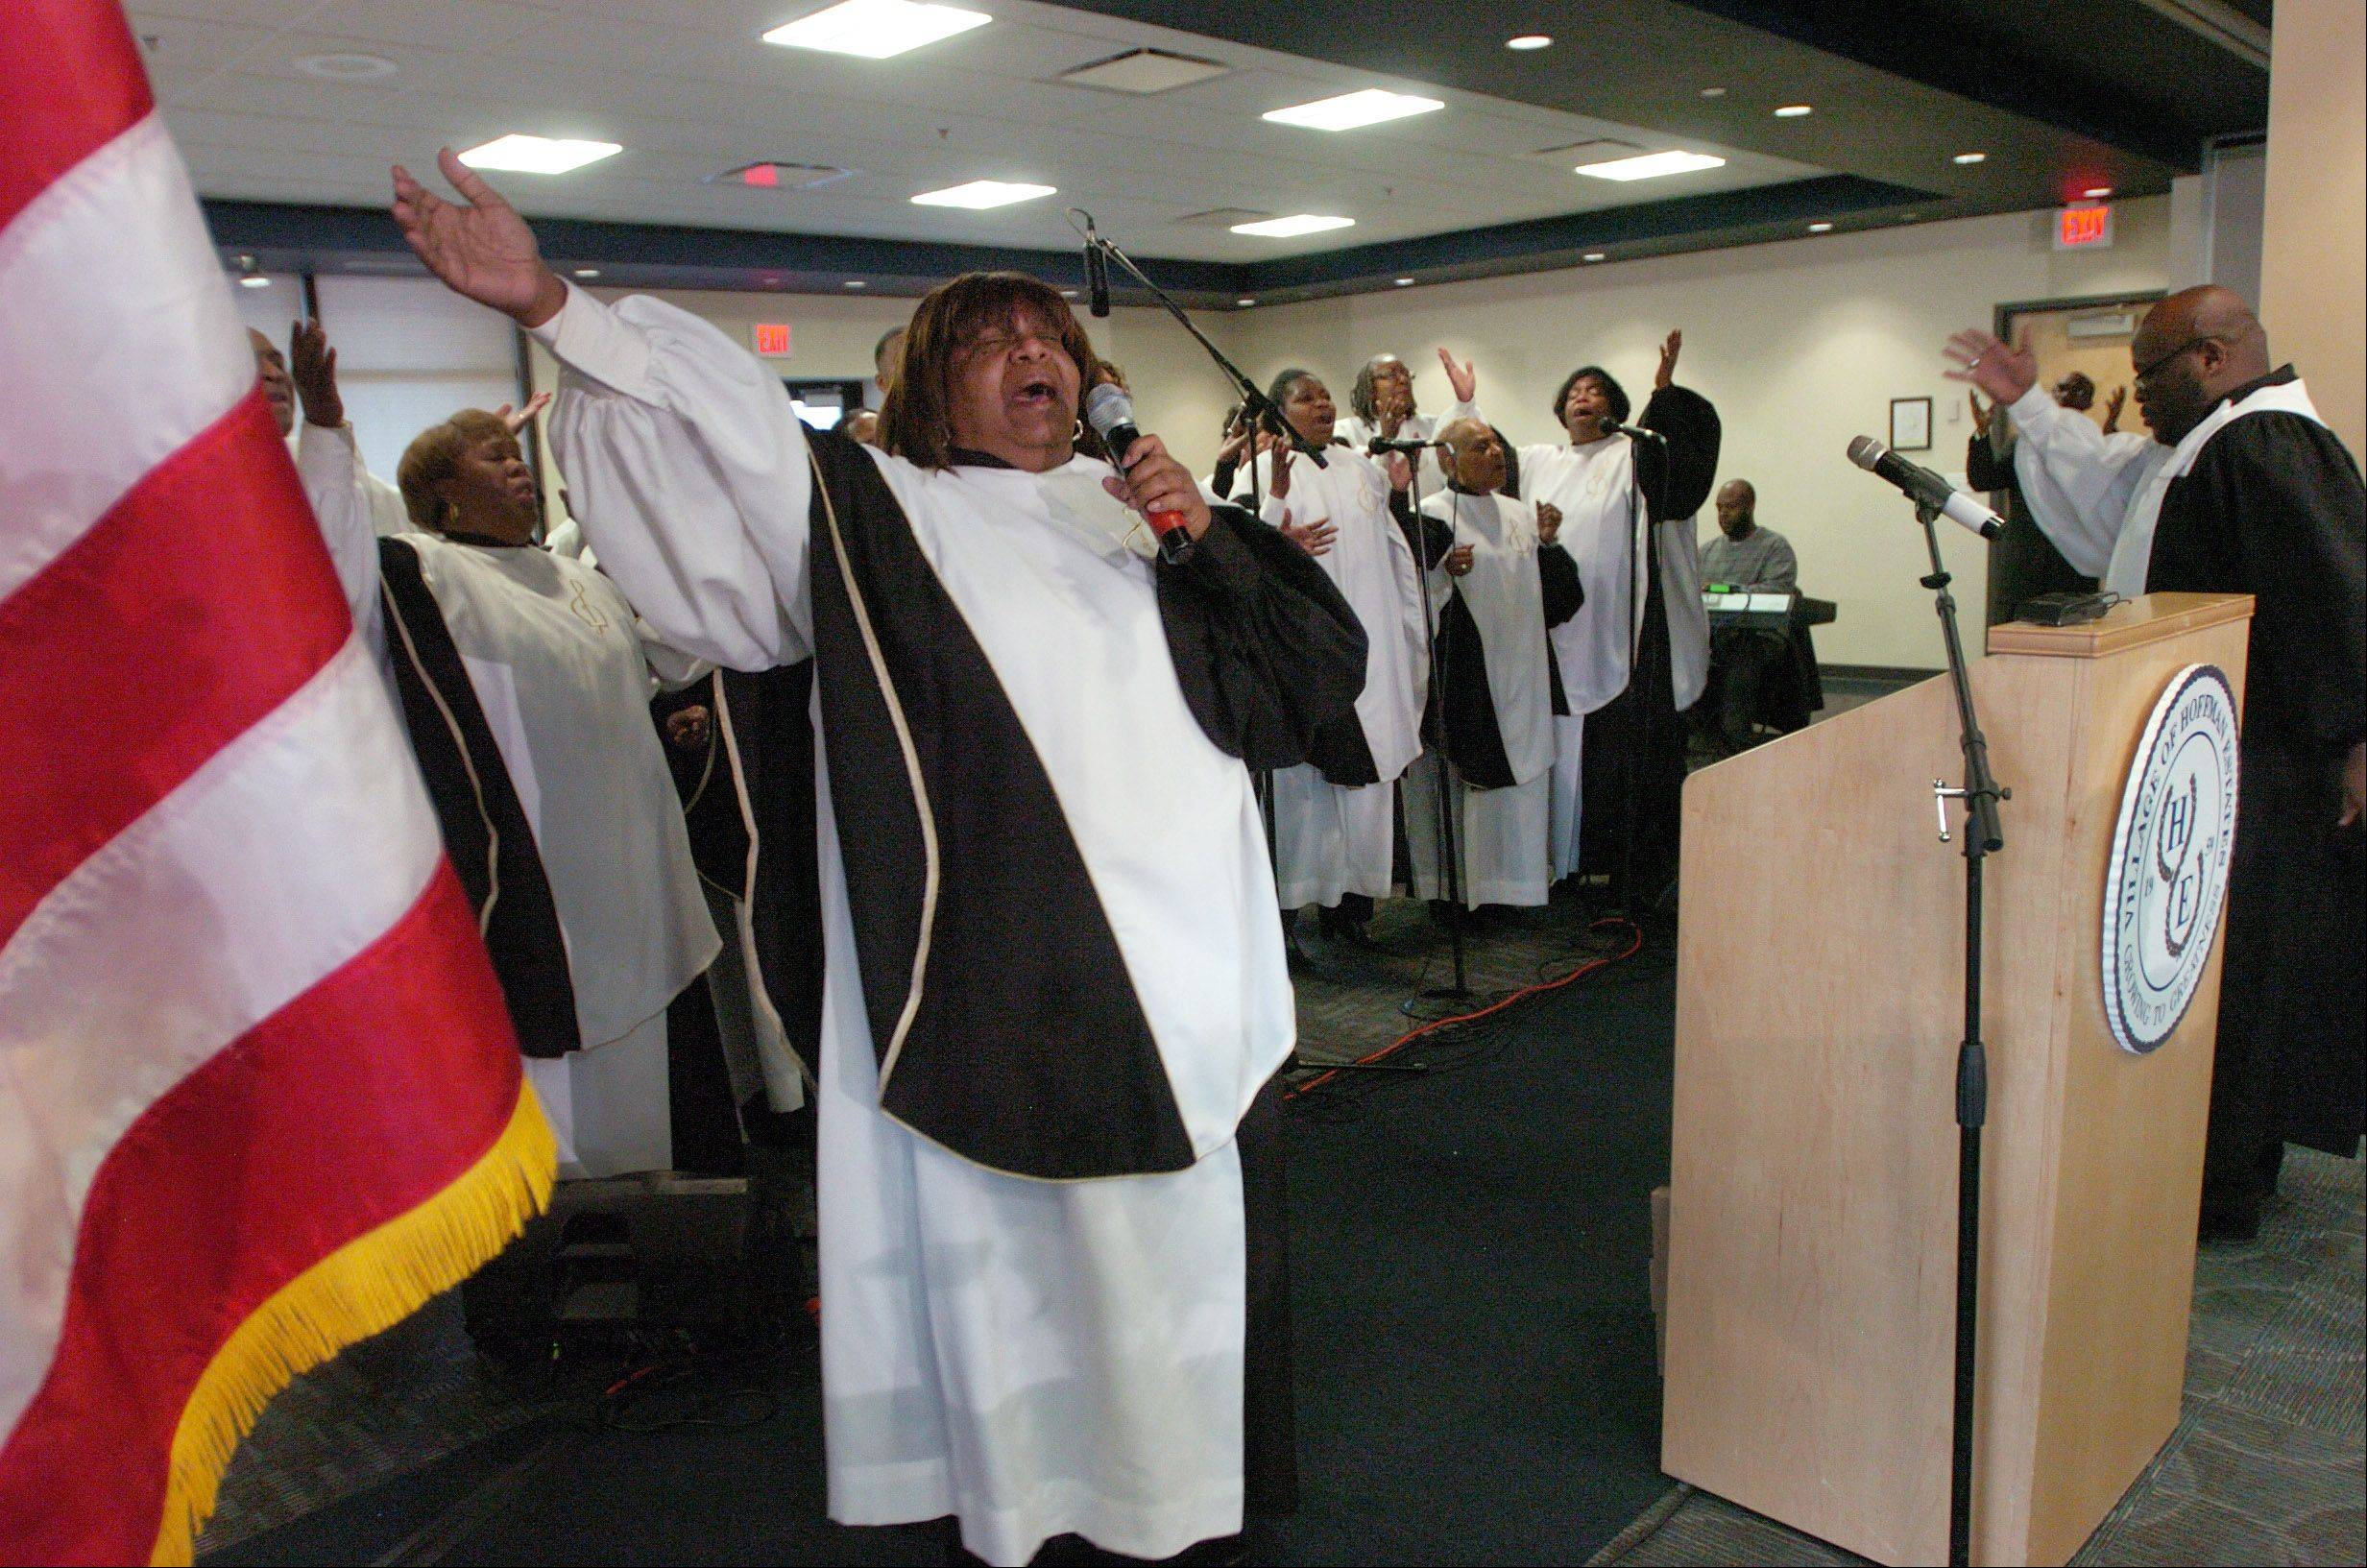 Regina Randle of the Sears Holdings Associate Gospel Choir solos during their performance in Hoffman Estates Monday morning.